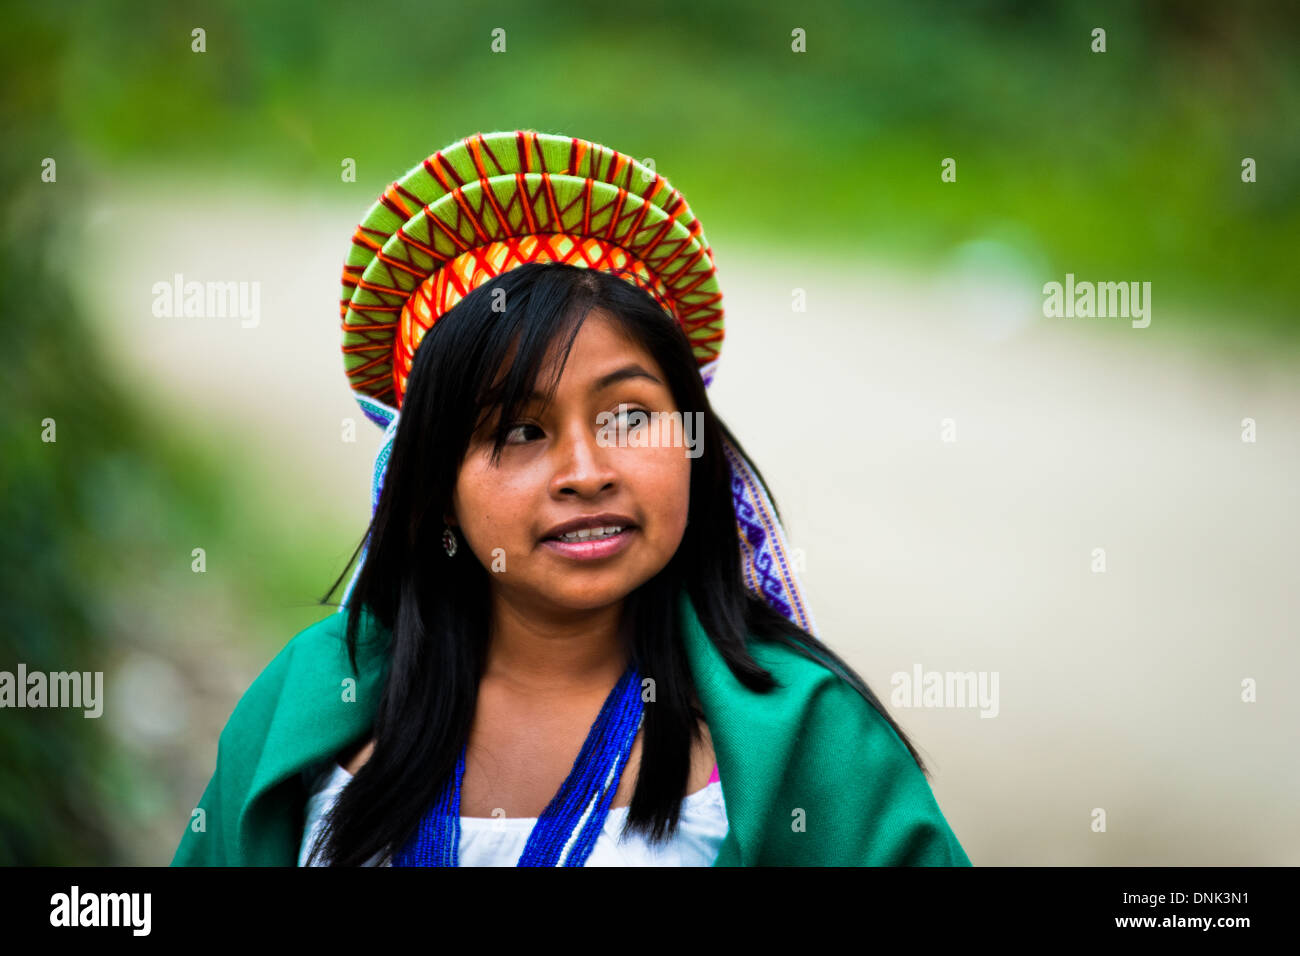 A native from the Kamentsá tribe takes part in the Carnival of Forgiveness in Sibundoy, Colombia. - Stock Image